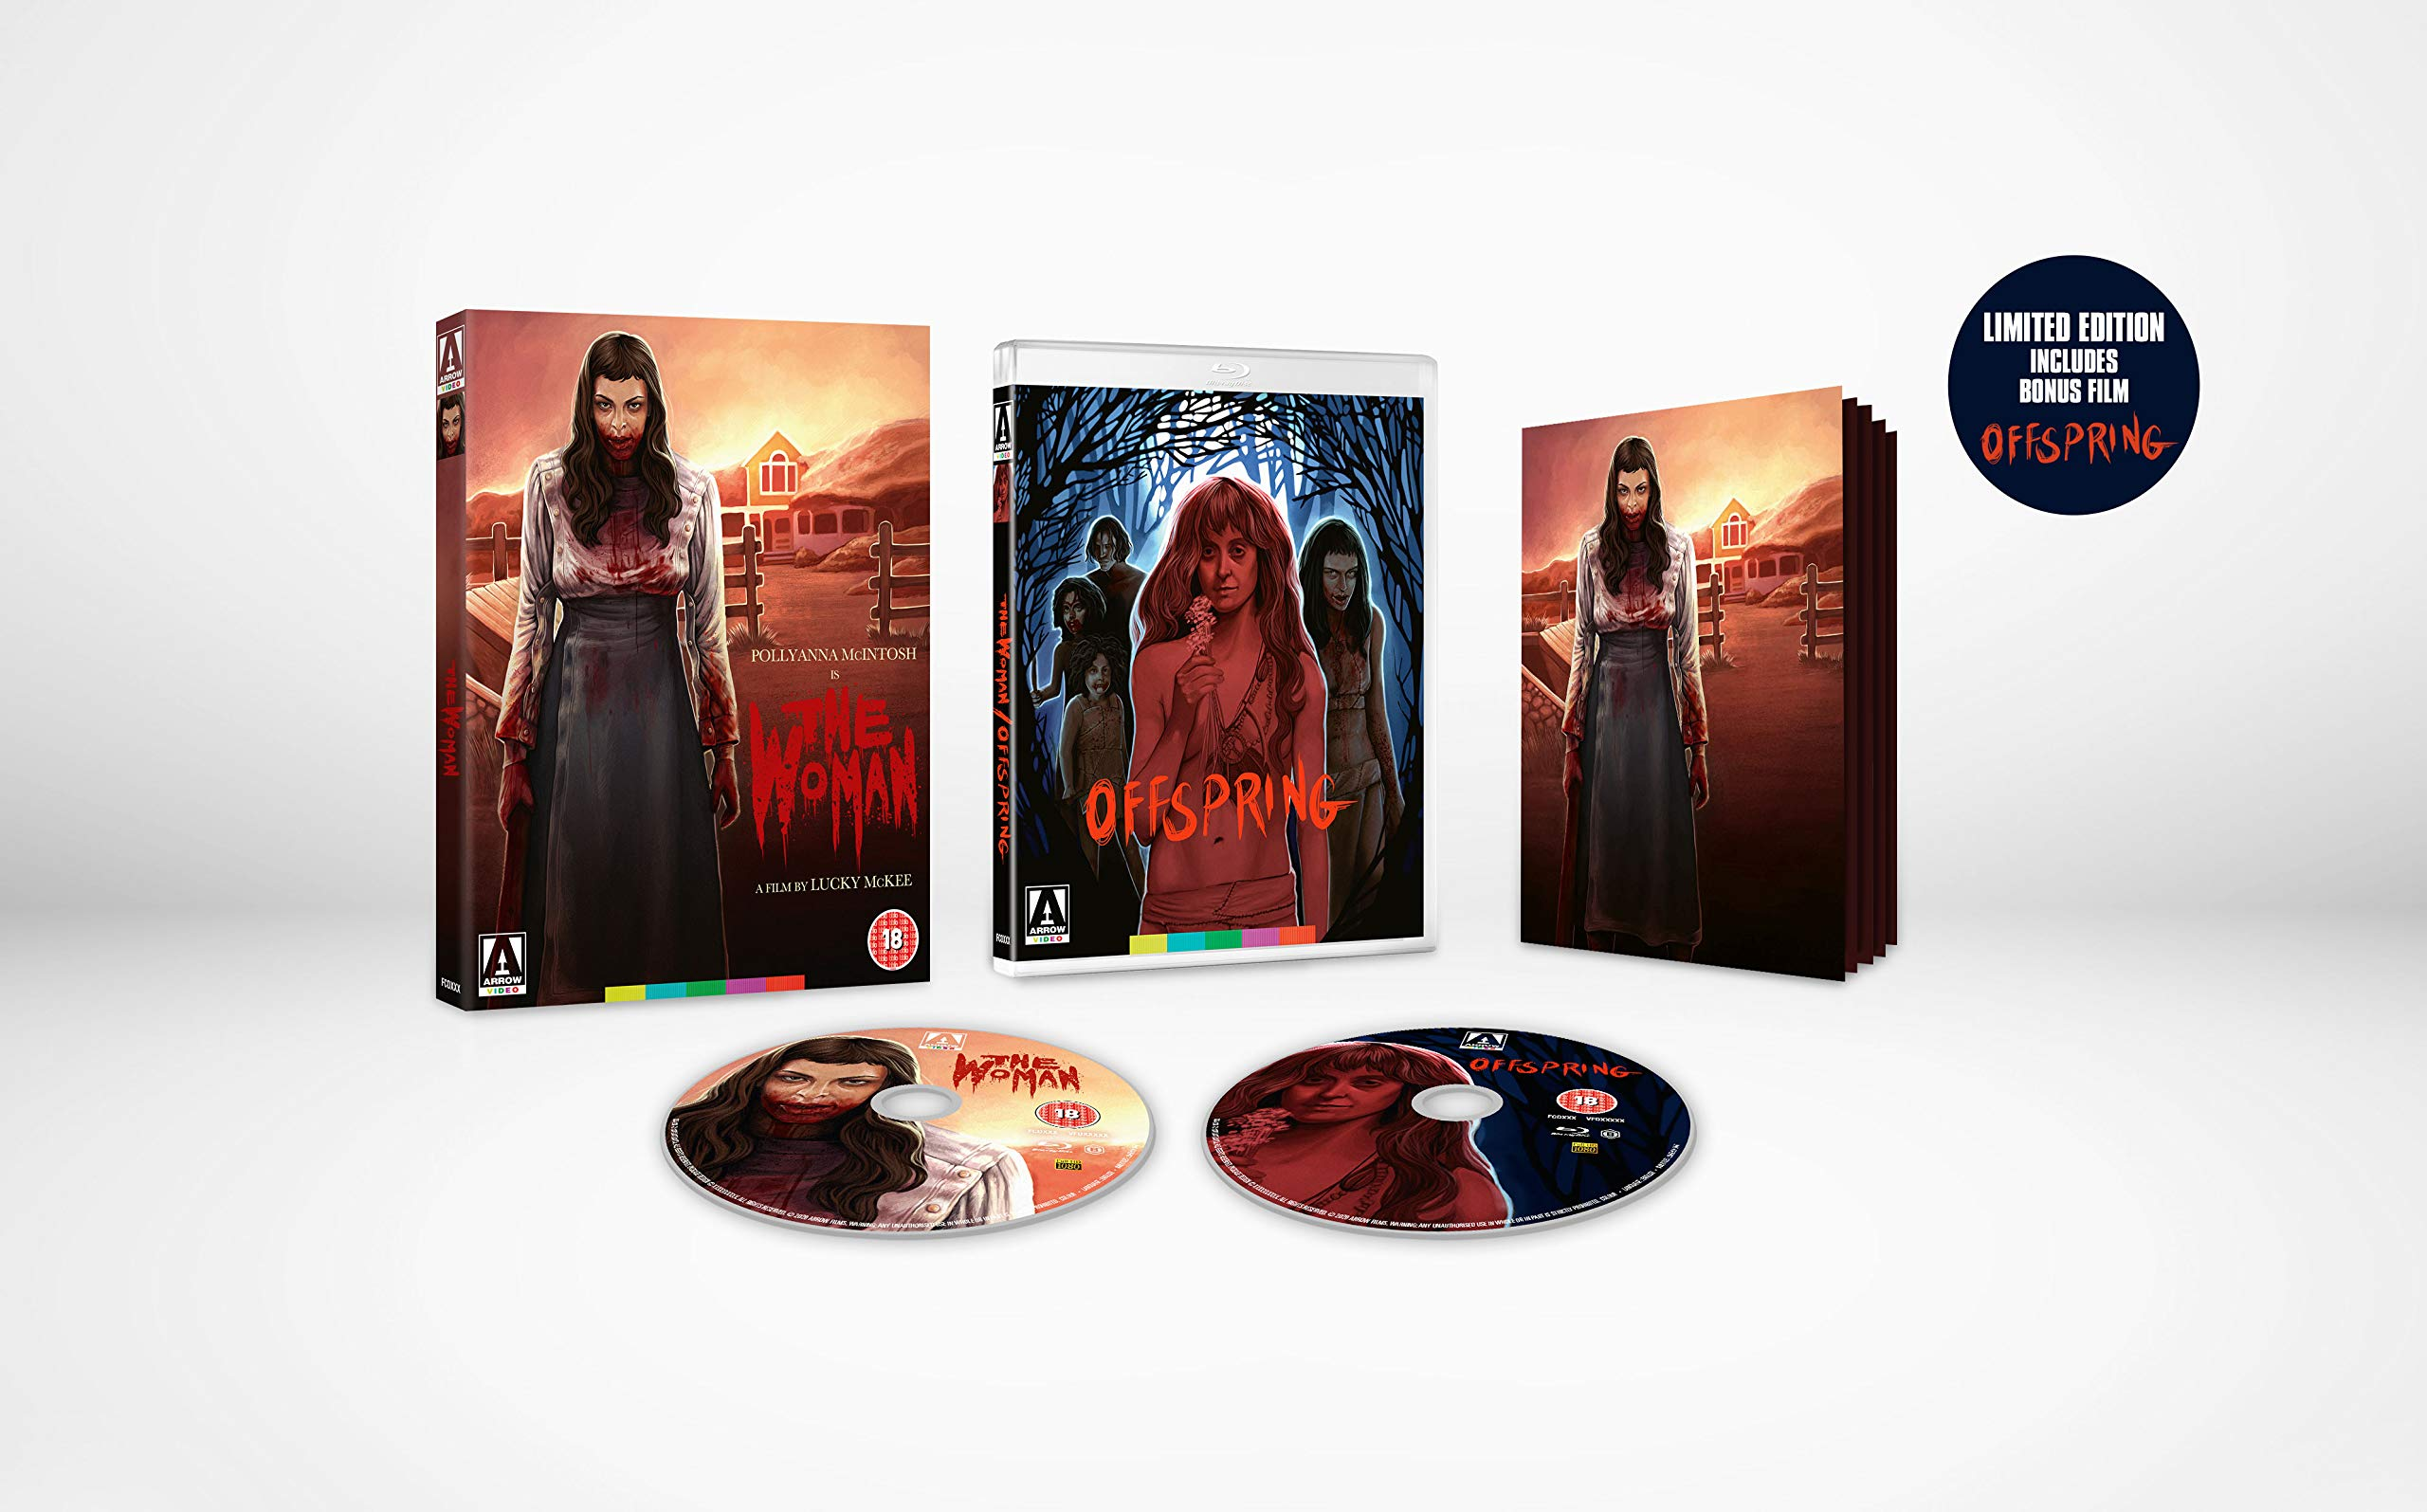 The Woman + Offspring Limited Edition [Blu-ray]